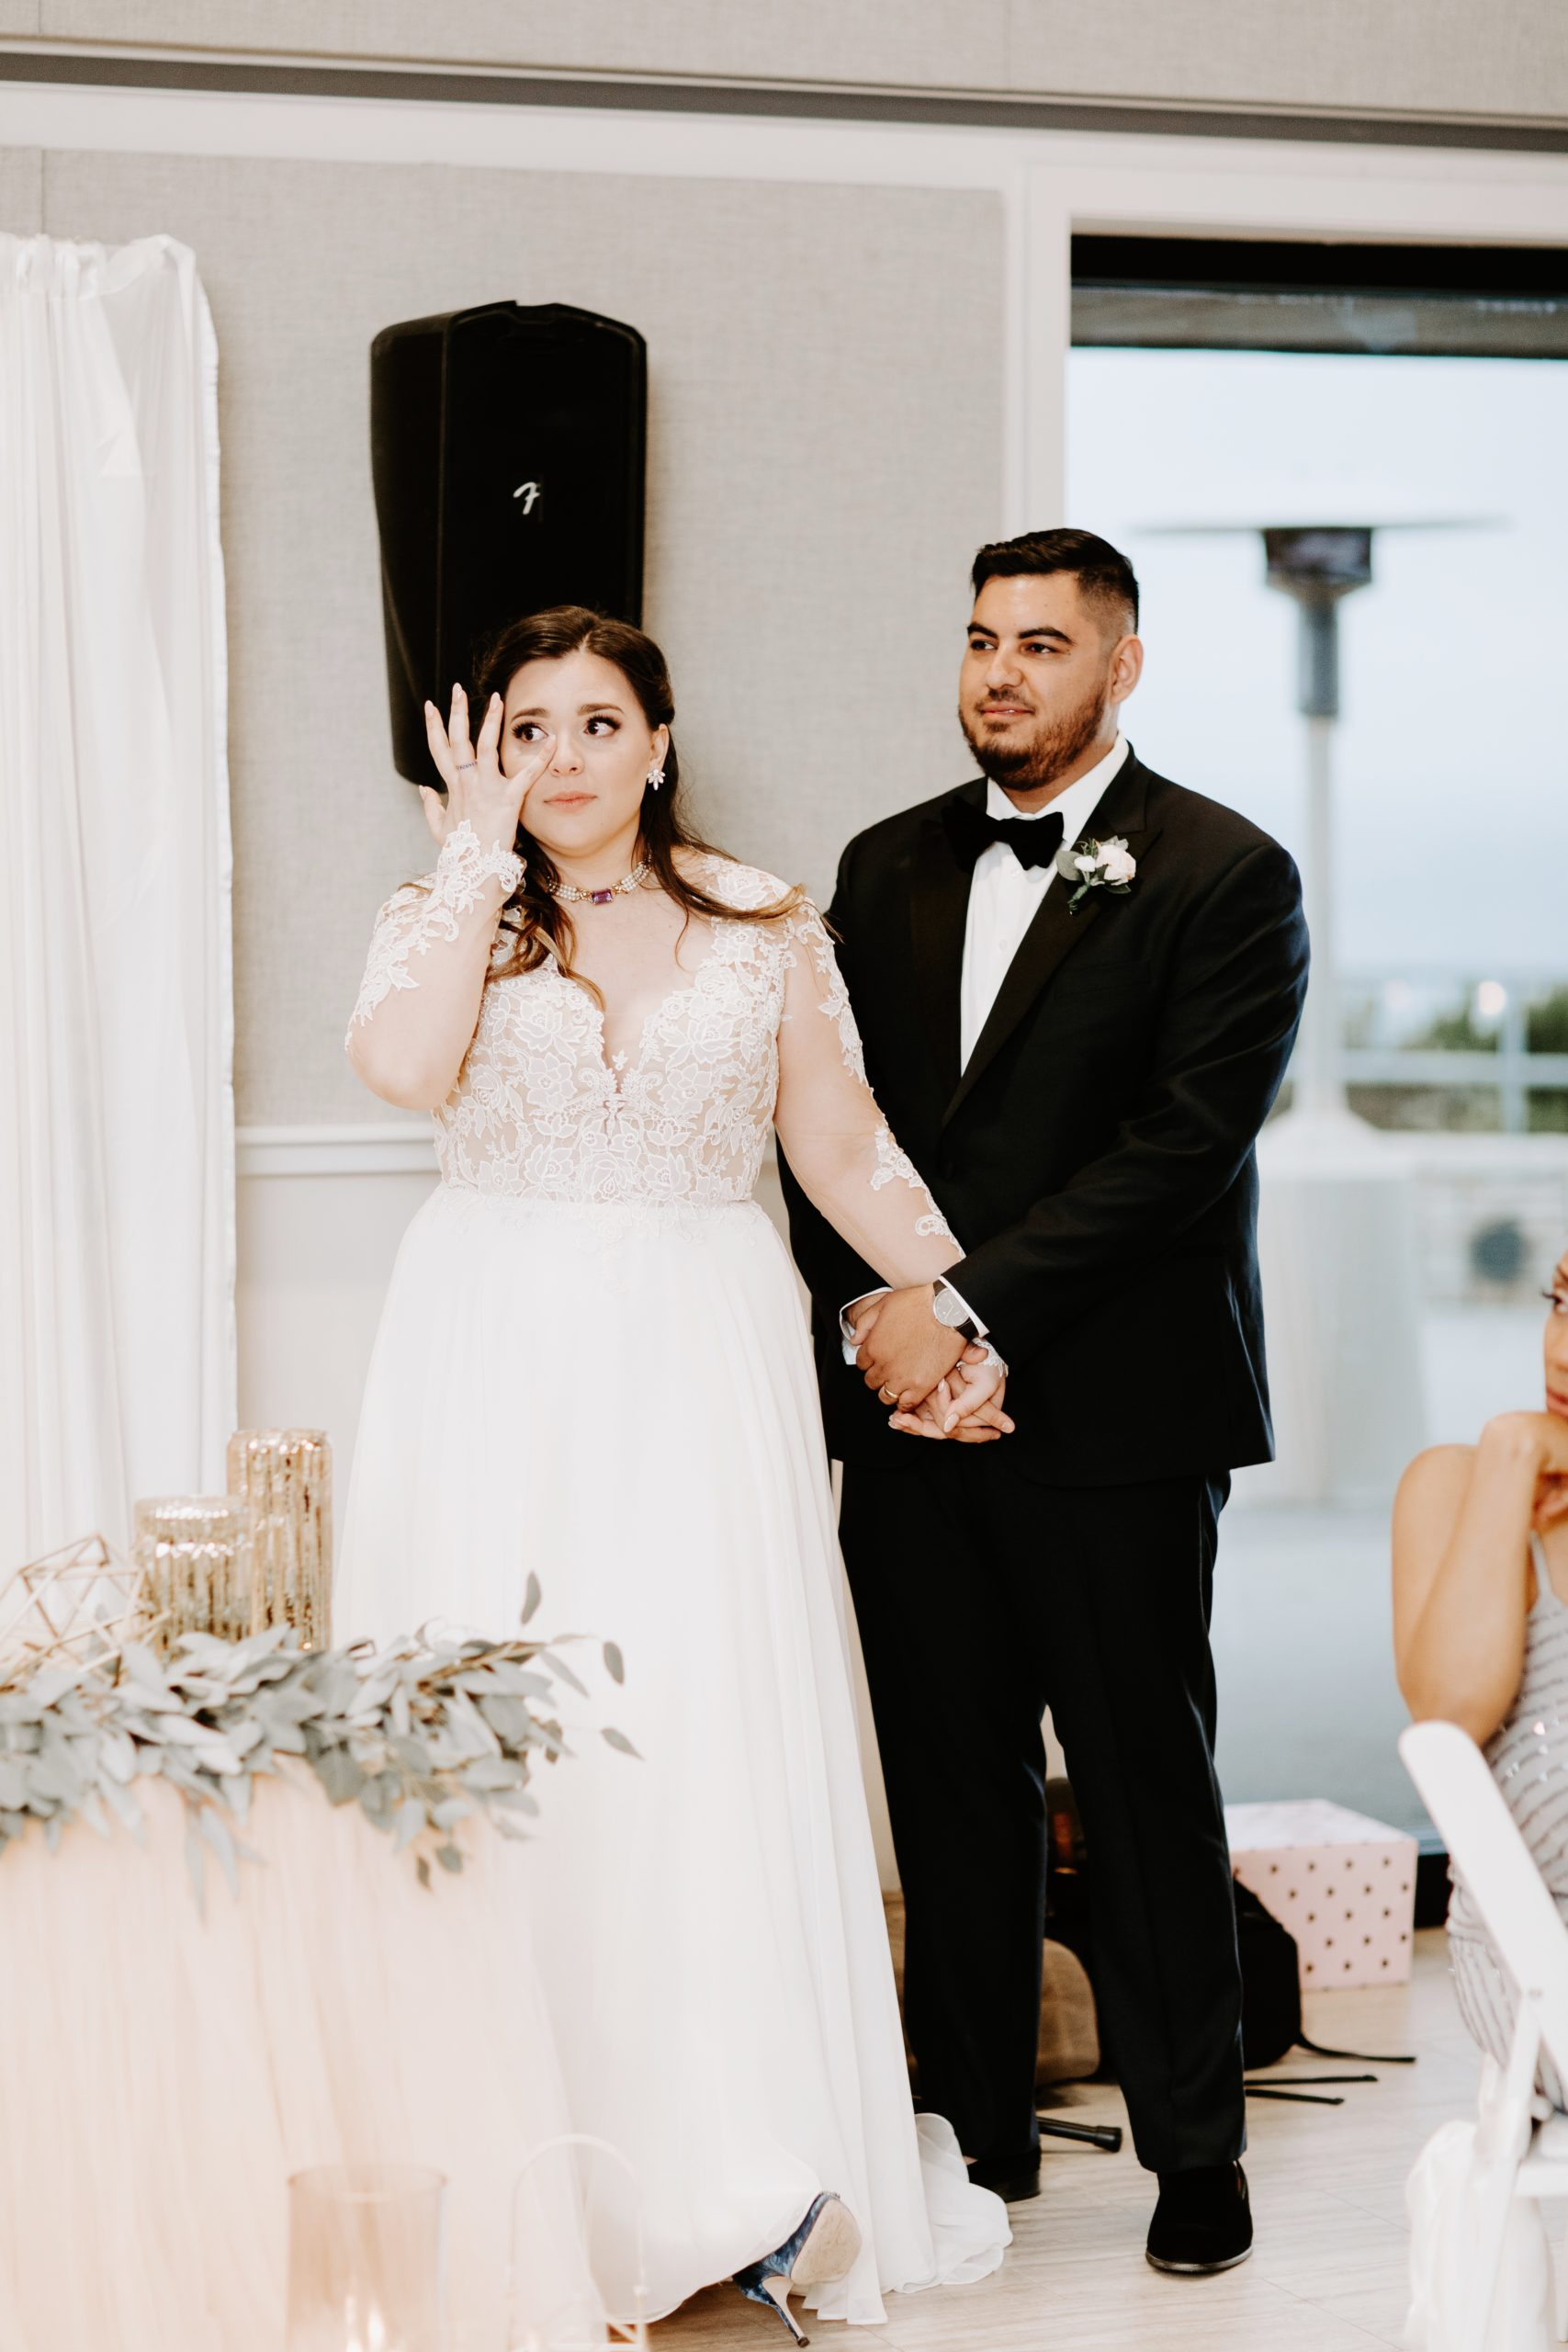 Emotional bride and groom listen to wedding toasts